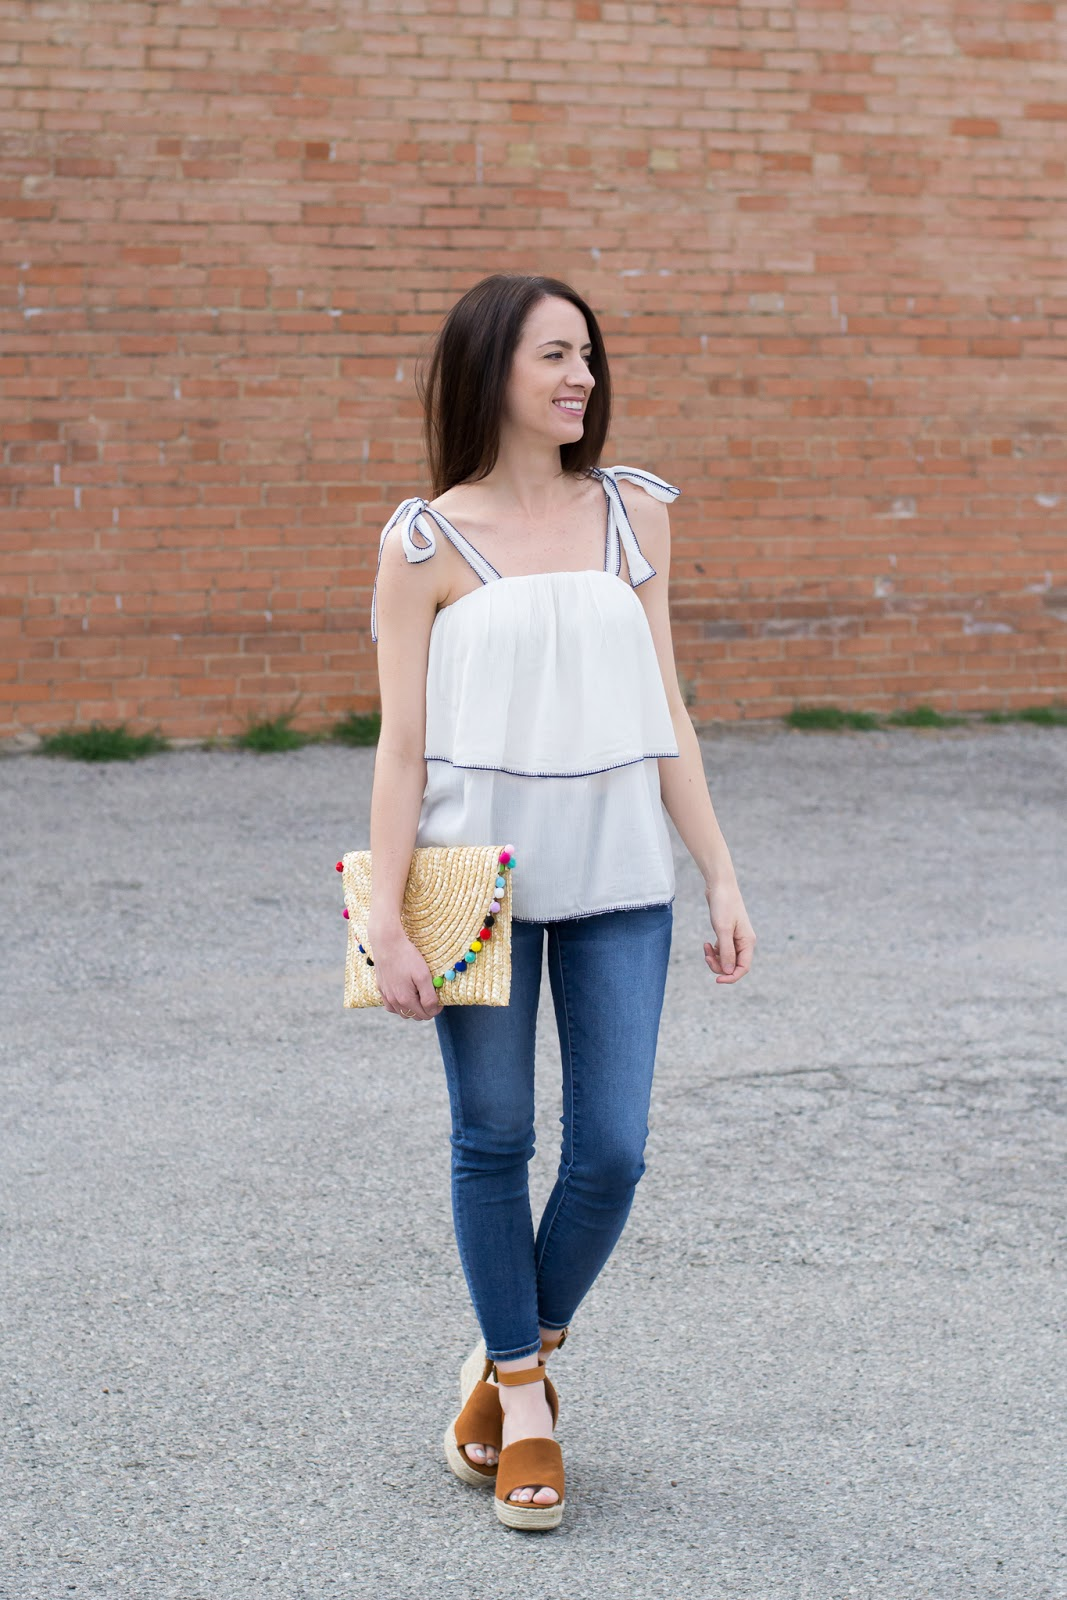 Summer ruffle top and straw pom pom clutch